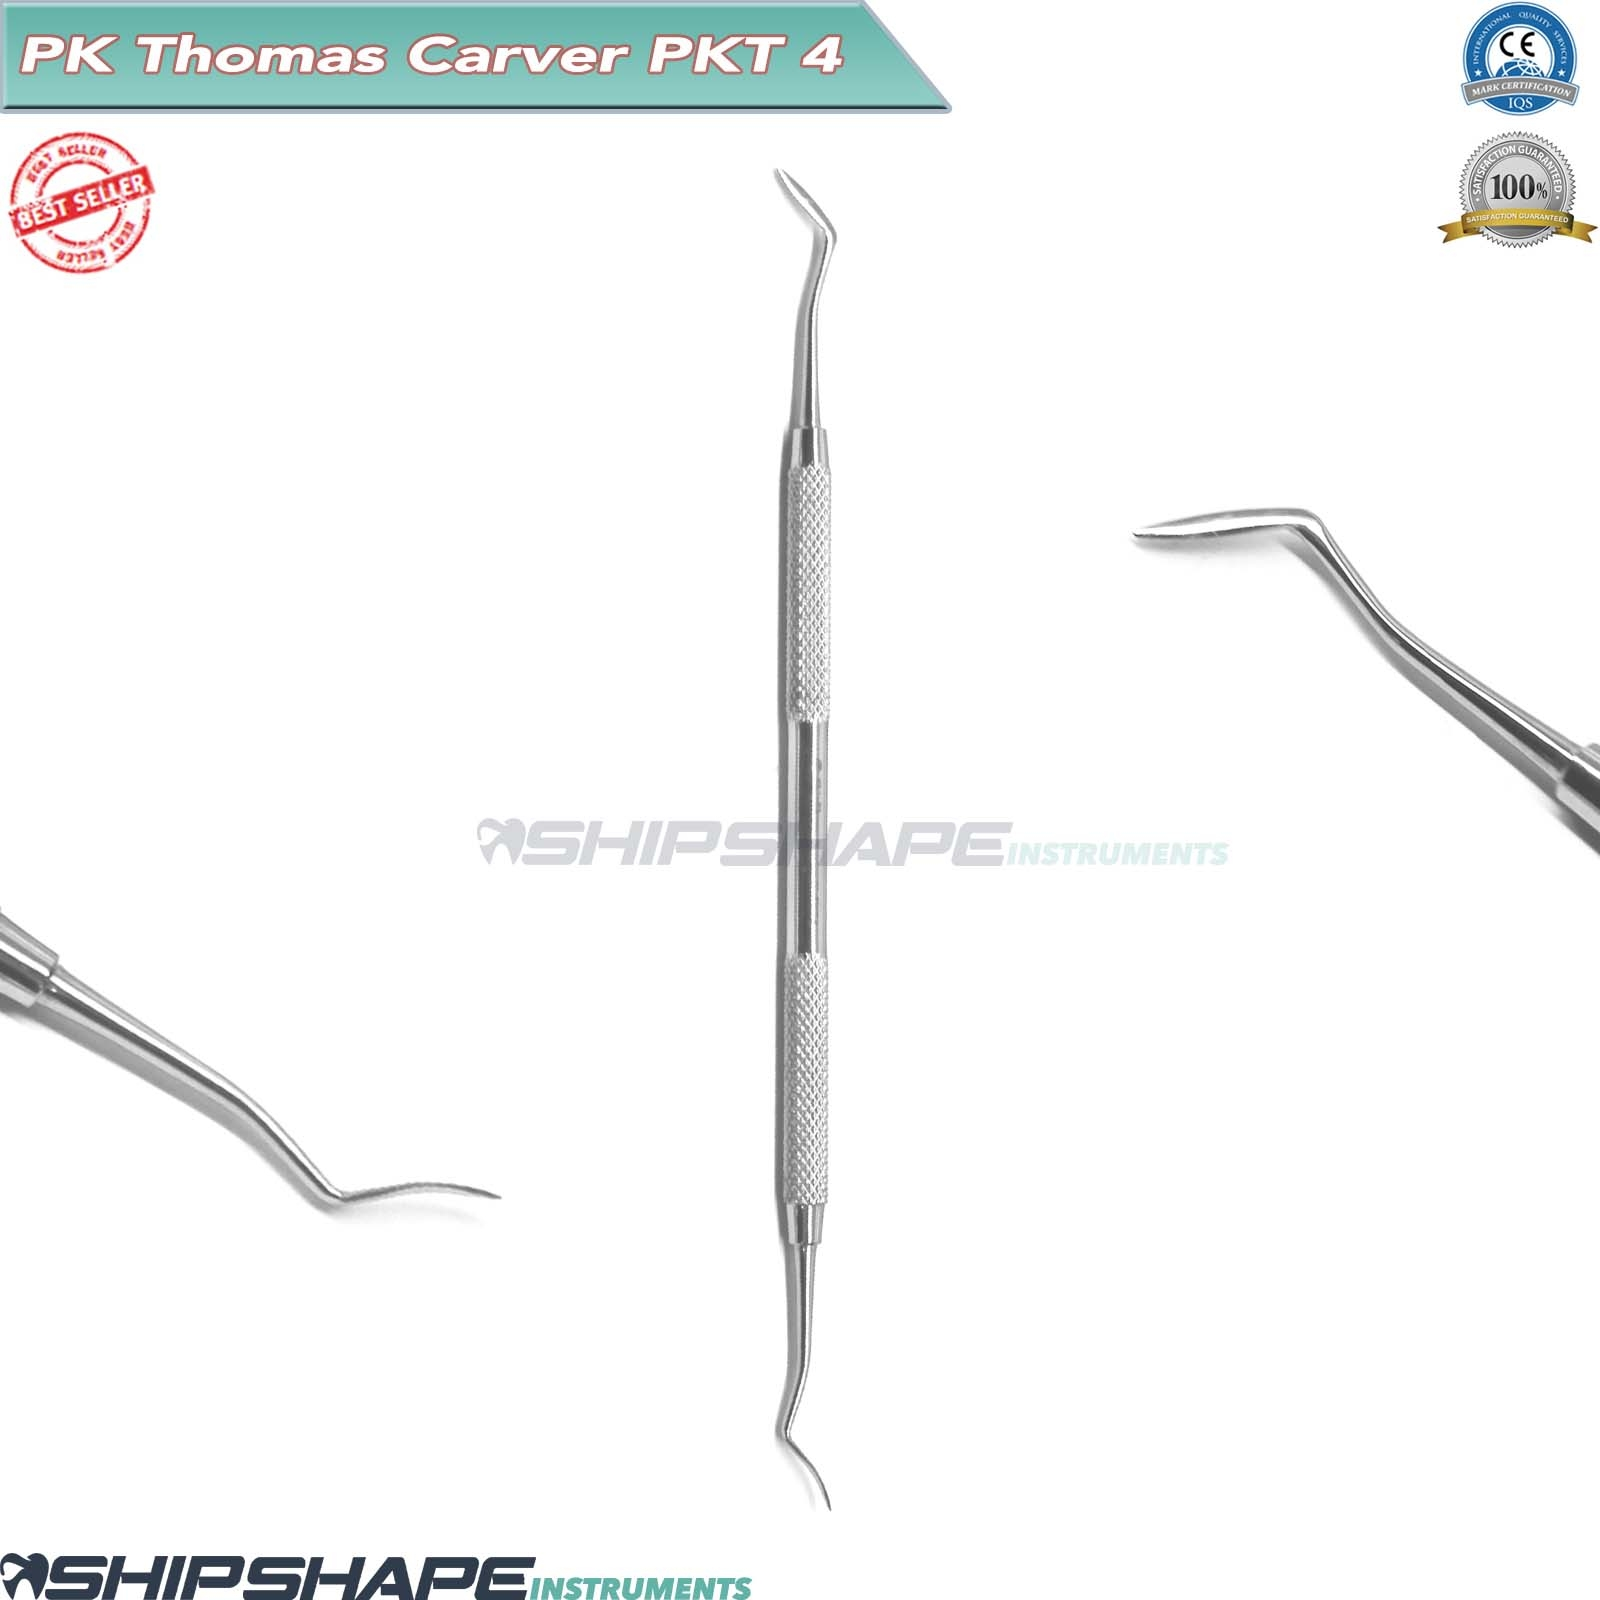 PK.THOMAS Carvers SET of 5 Stainless Steel Dental Wax and Modelling Carving Lab PKT1, PKT2, PKT3, PKT4, PKT5-2070